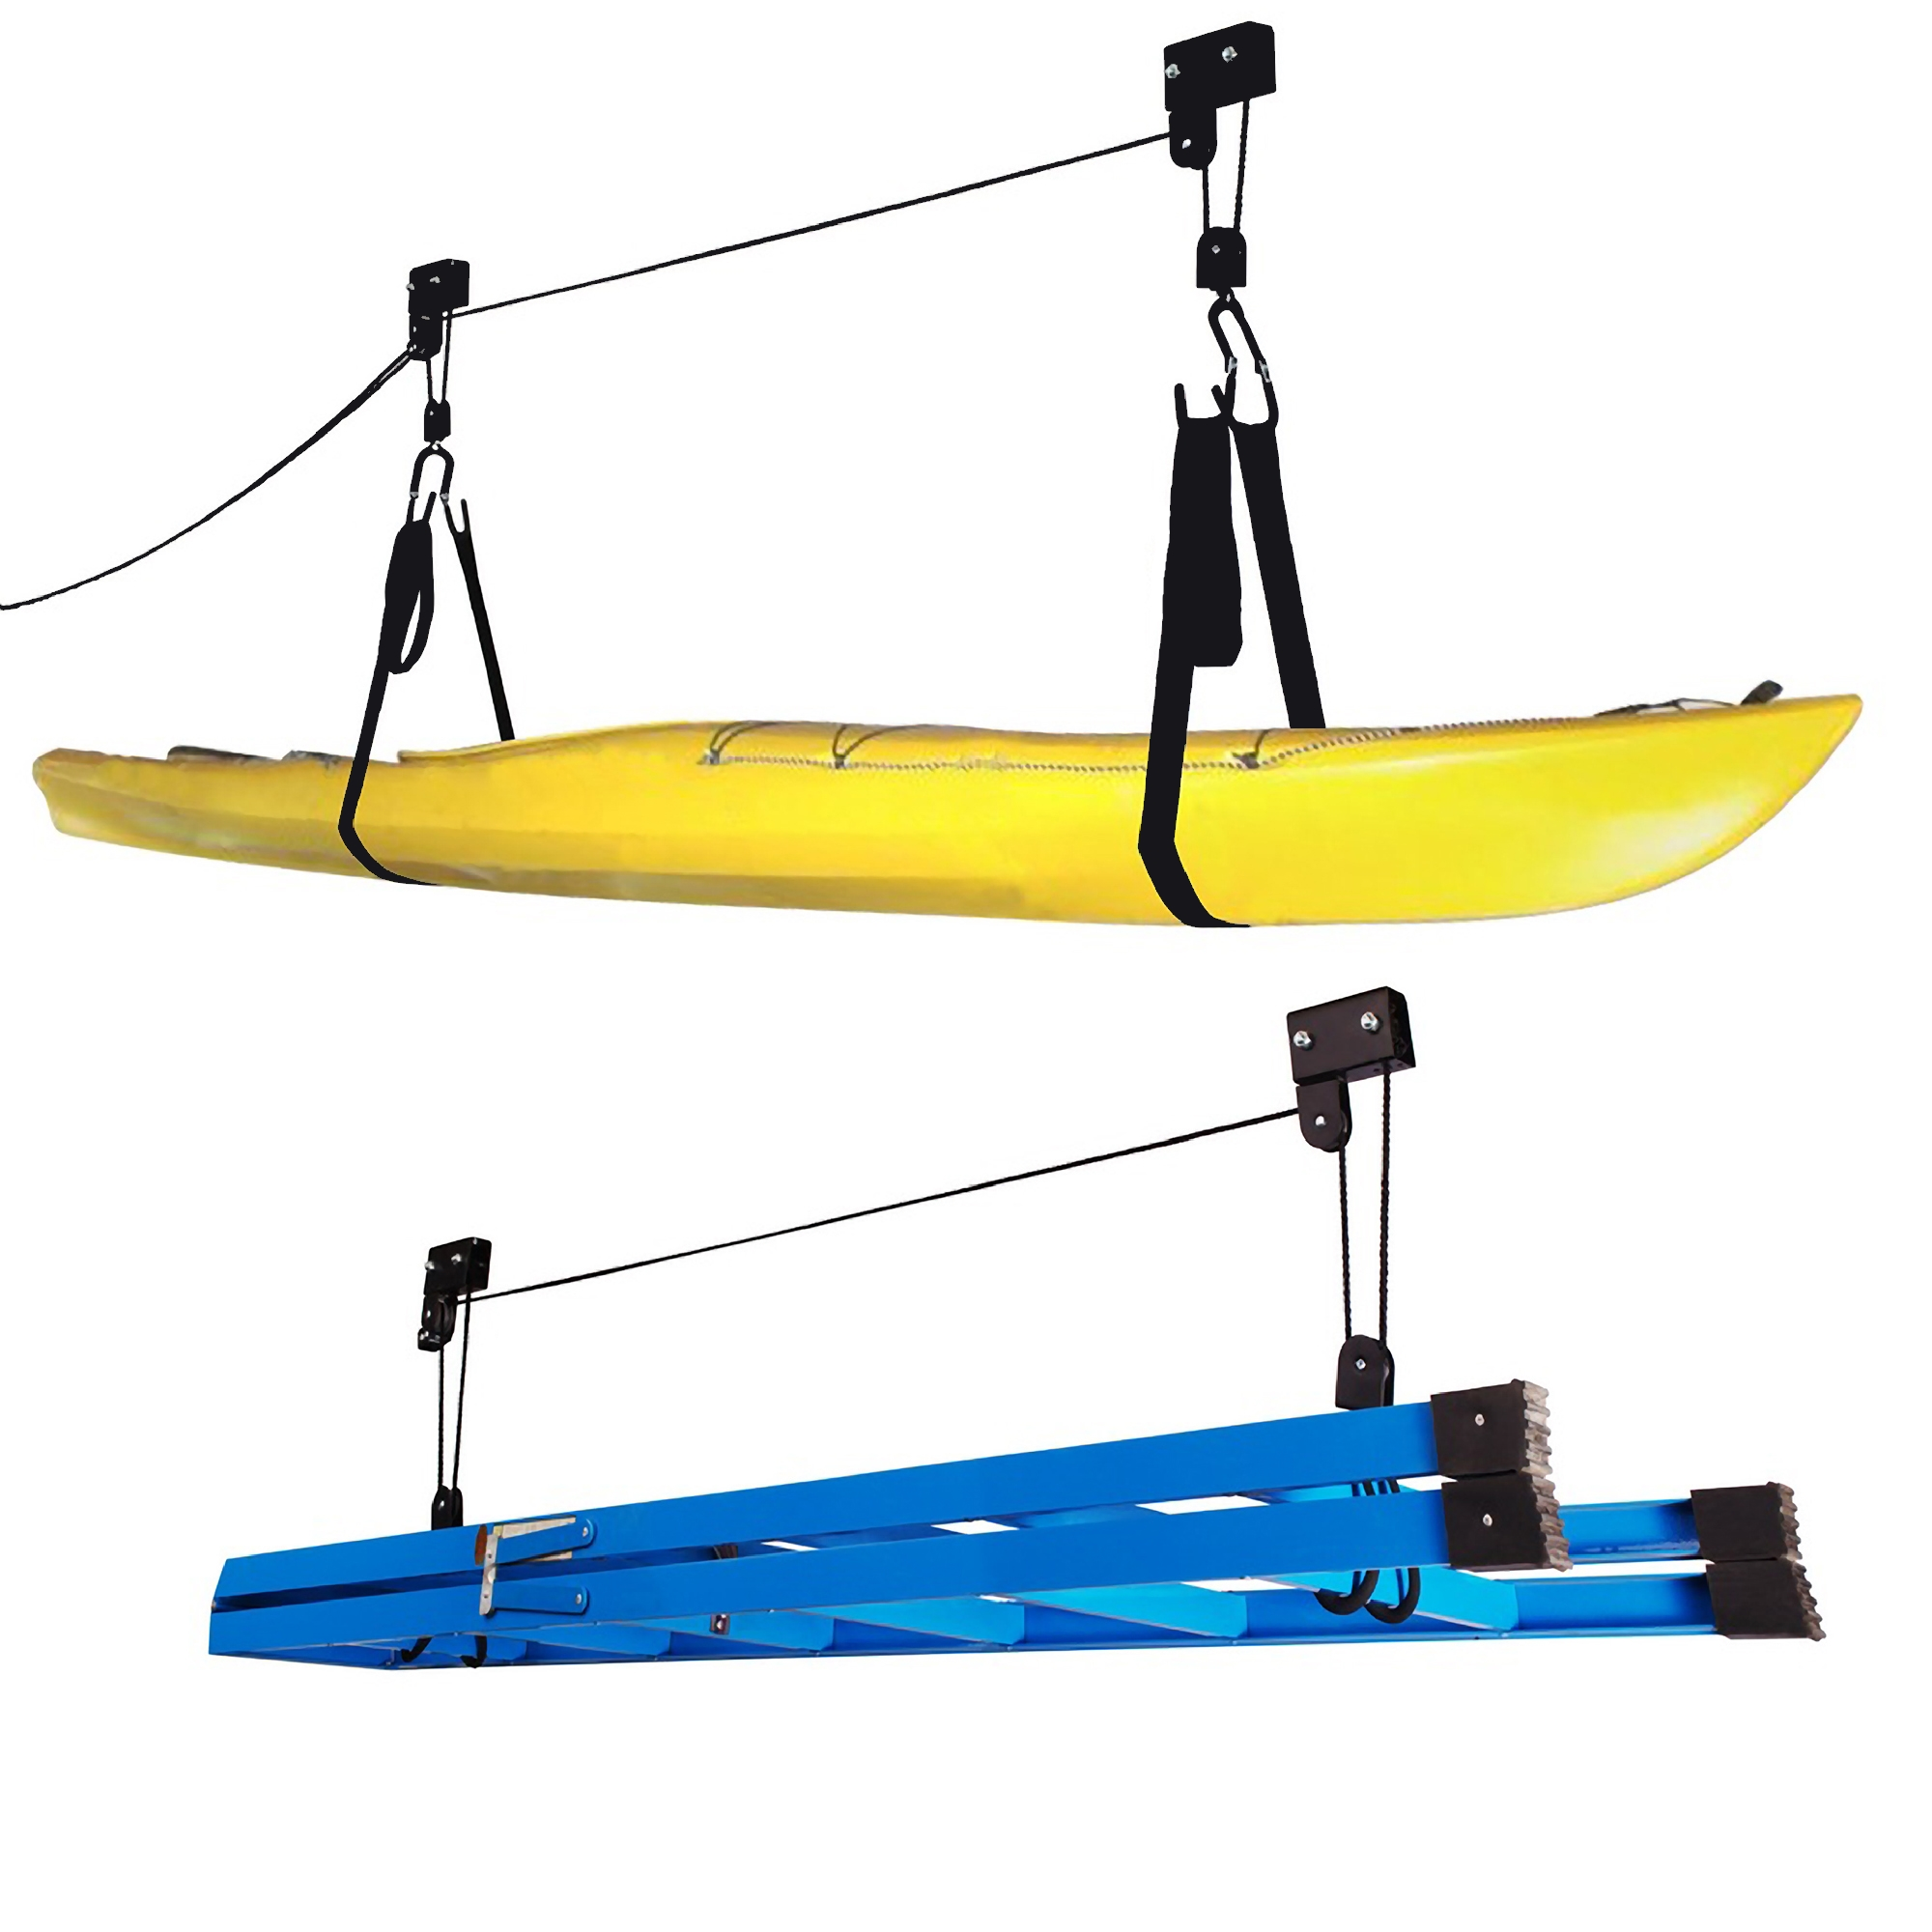 Kayak Hoist Lift Garage Storage Canoe Hoists 125 lb Capacity - Two 2 Pack